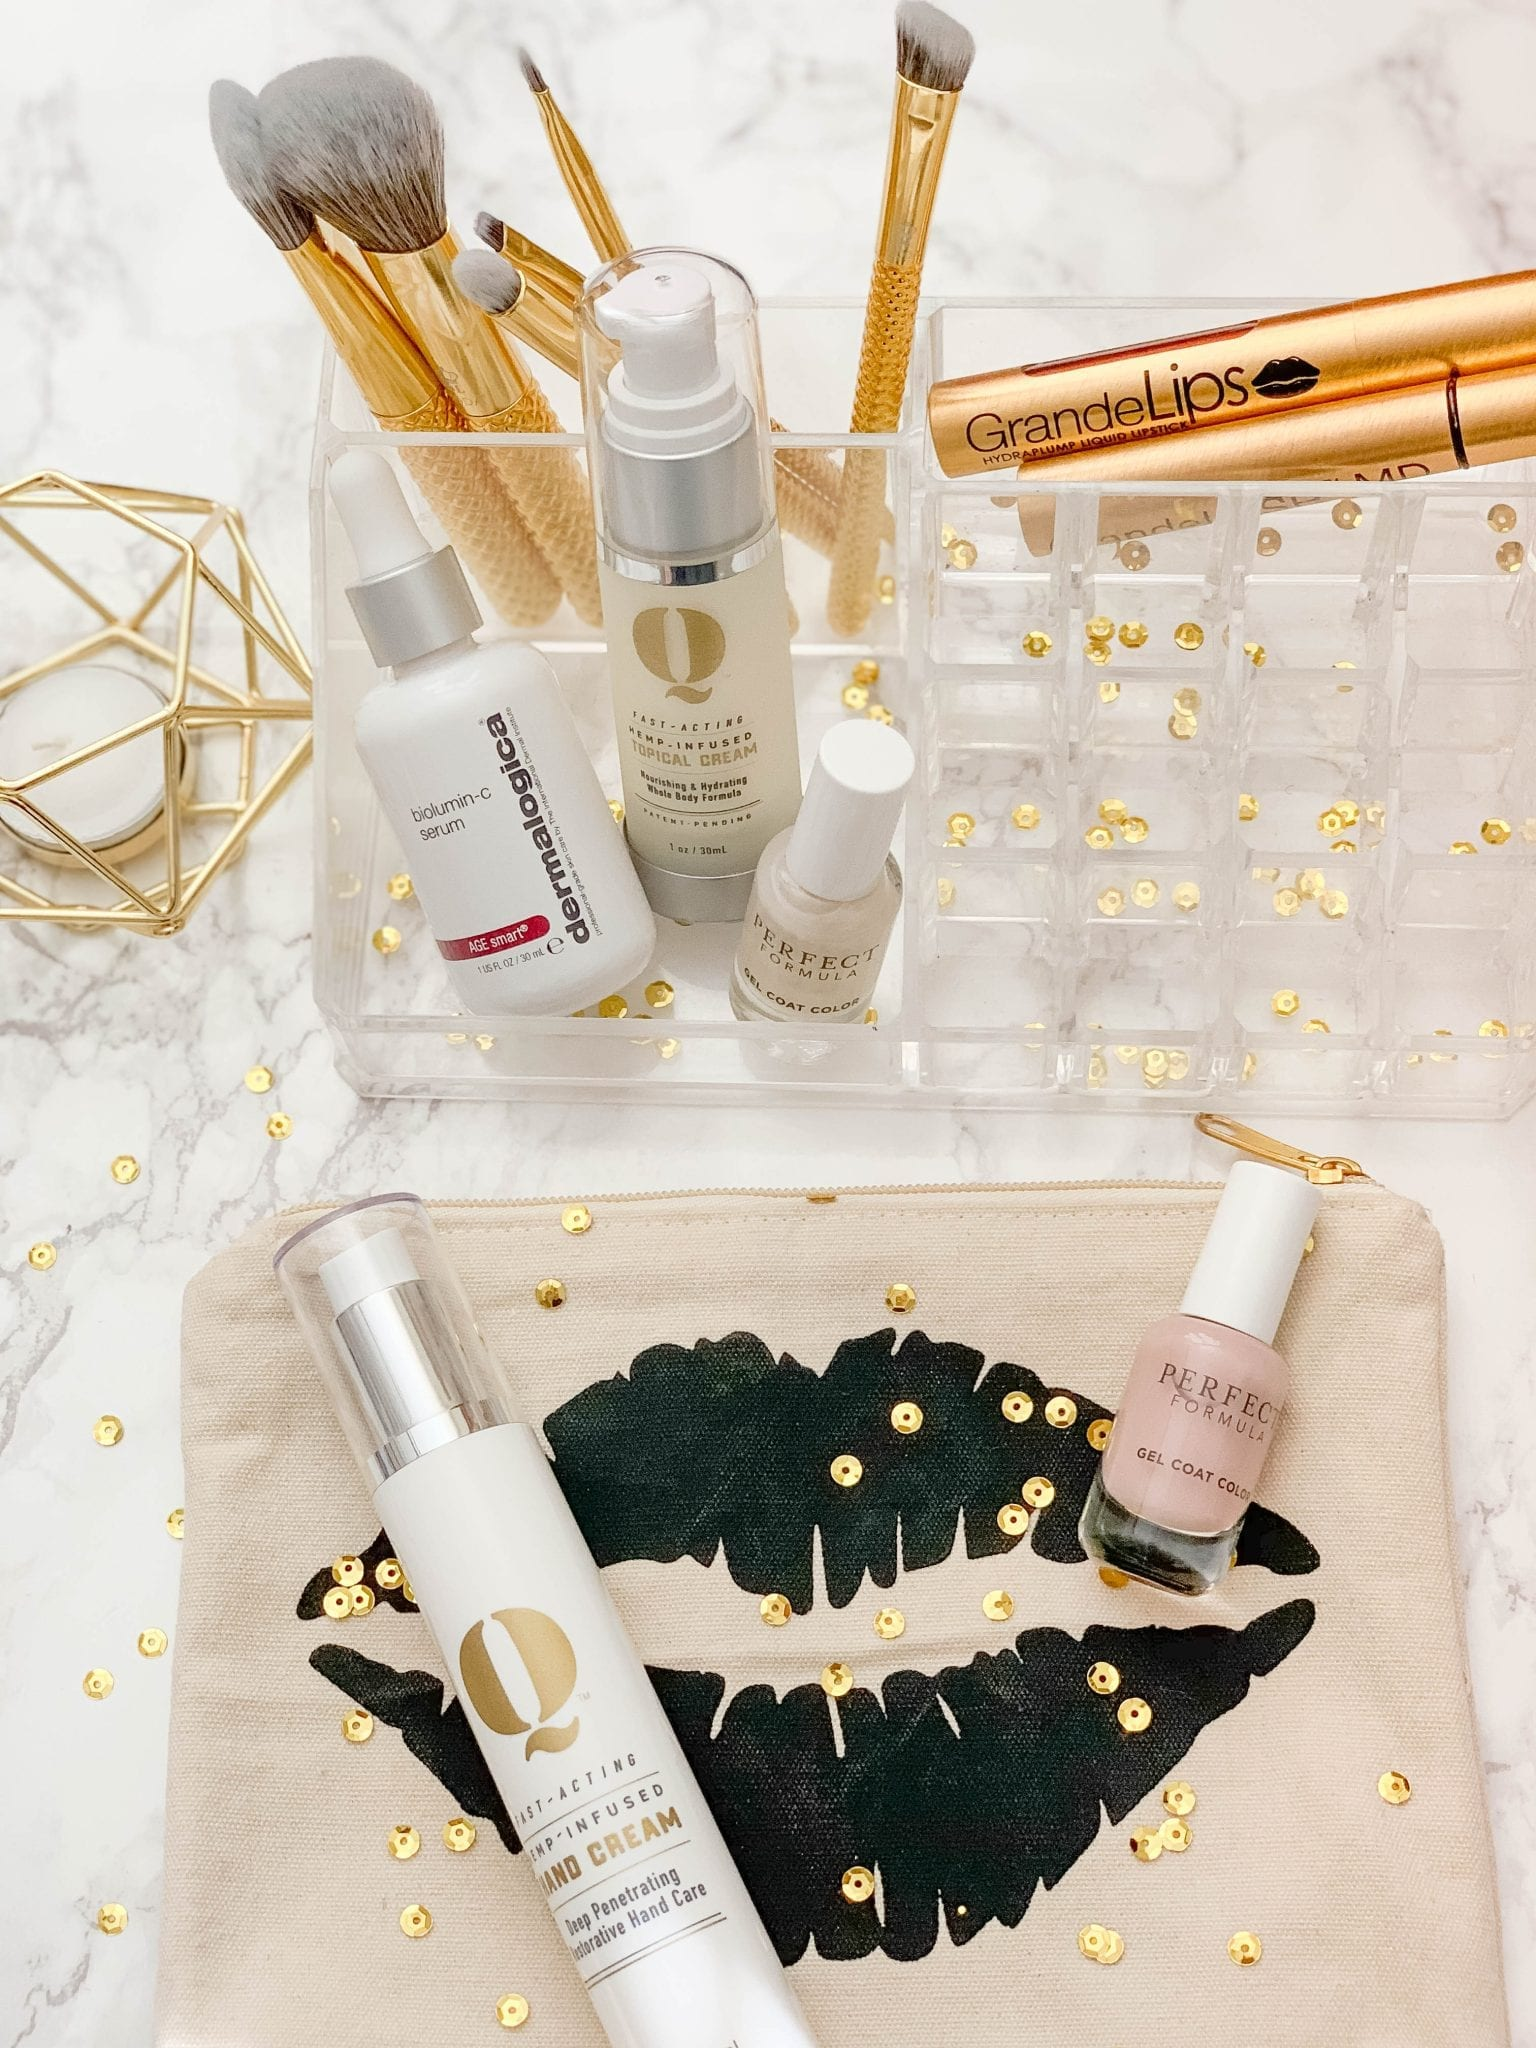 5 Beauty Items You Need to Be Red Carpet Ready